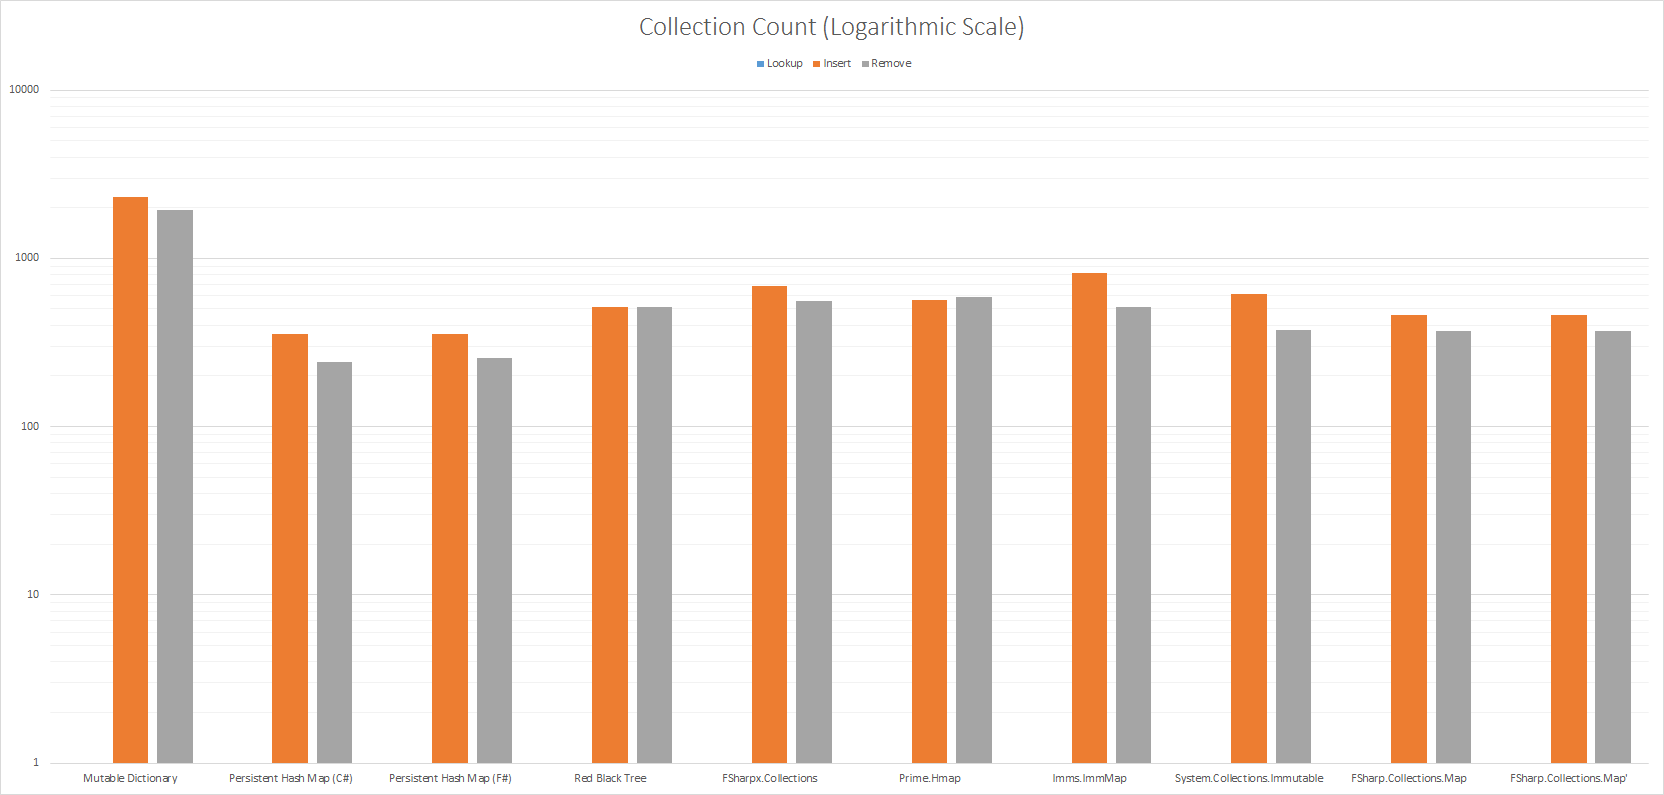 Collection Count (Logarithmic Scale)